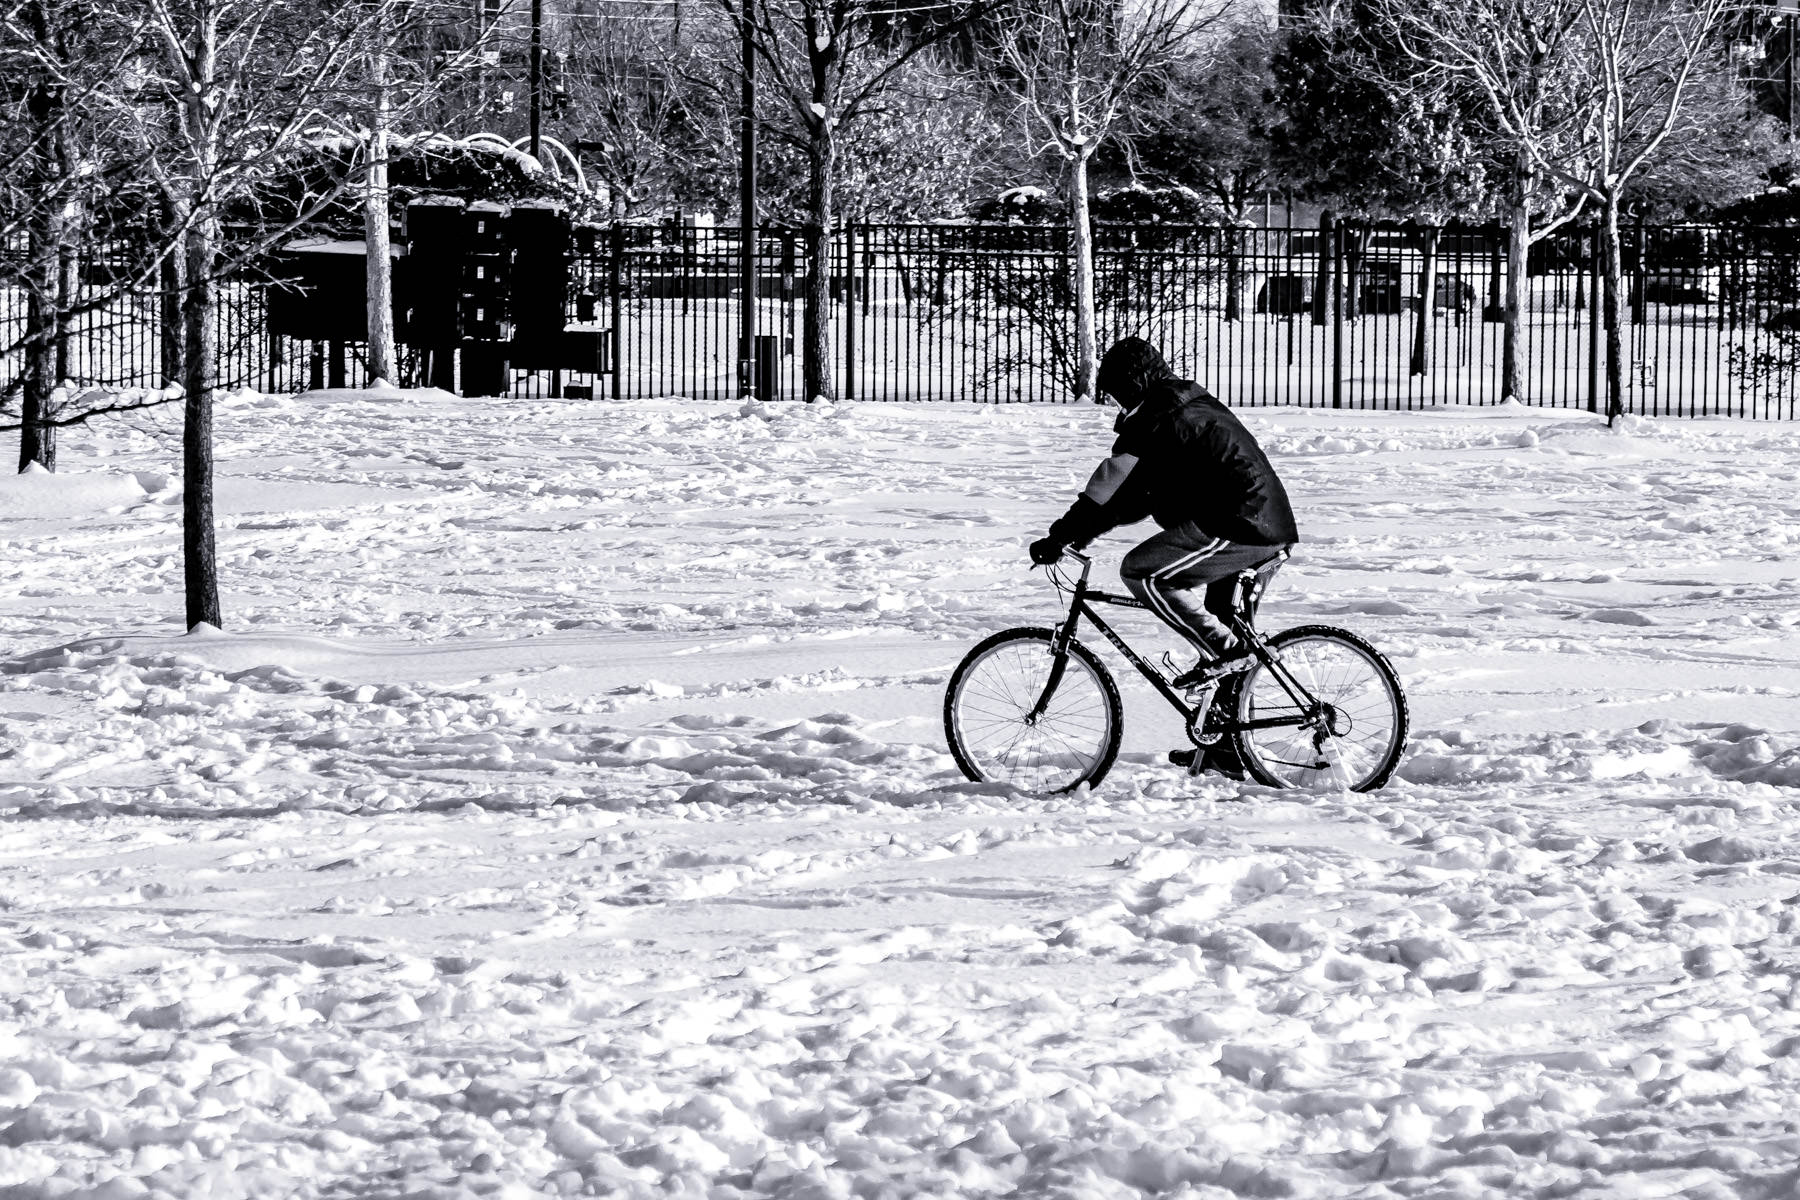 A bicyclist crosses Addison Circle Park in Addison, Texas, after a snowfall.